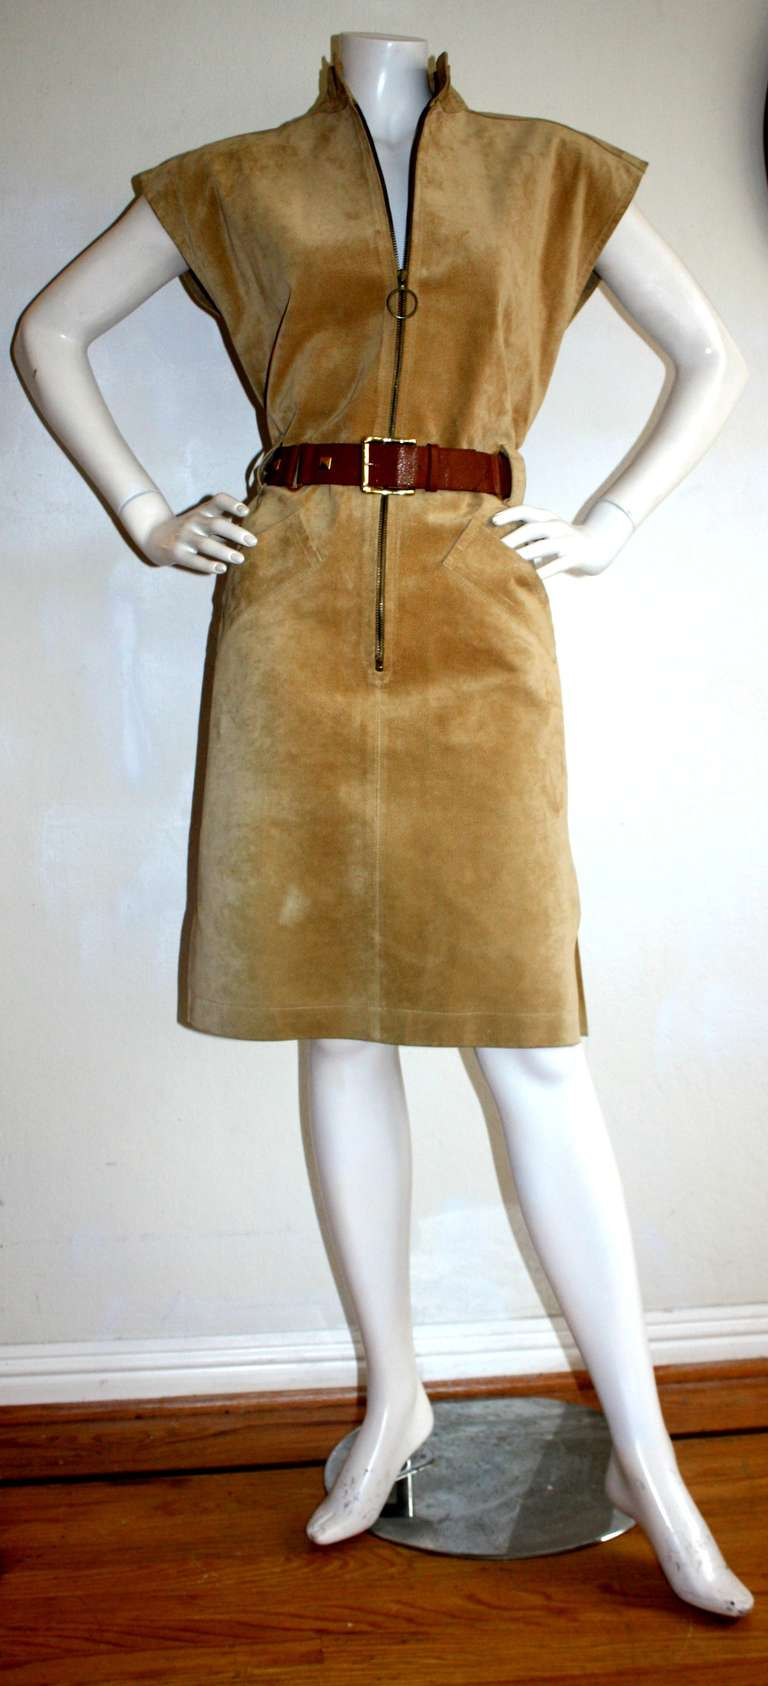 Yves Saint Laurent Vintage Pigskin Leather Suede Safari Dress 2